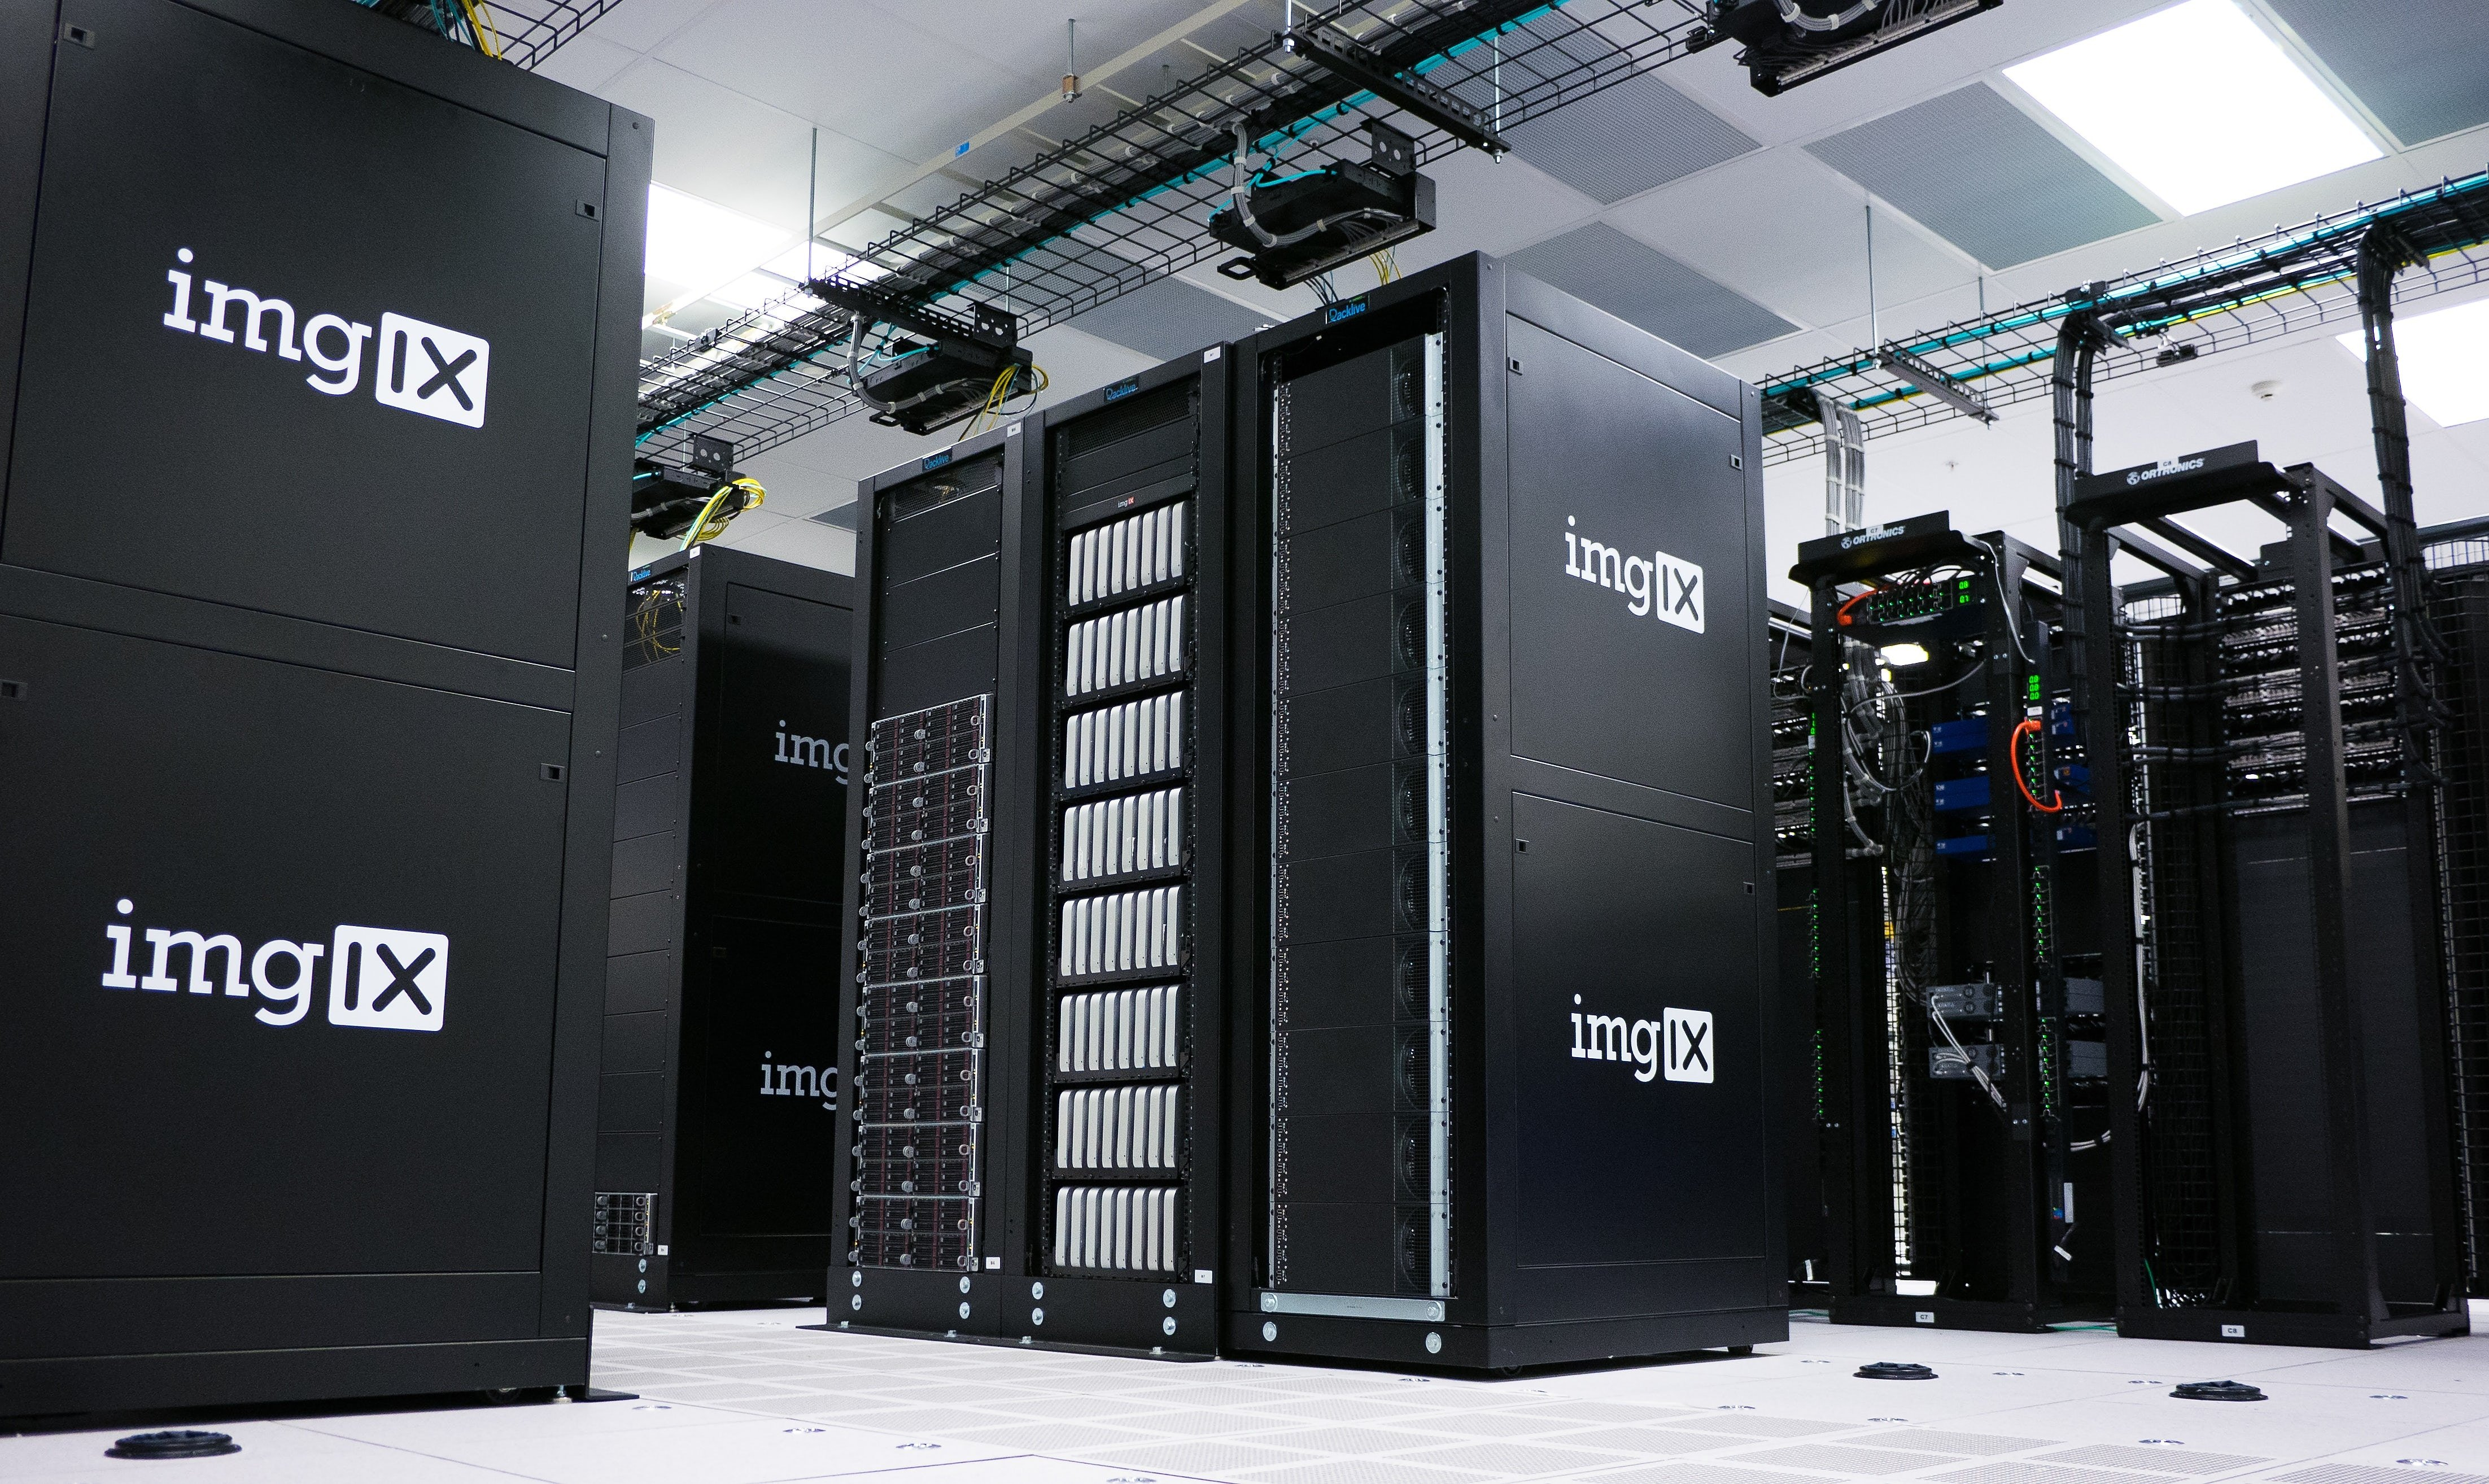 imgix data center